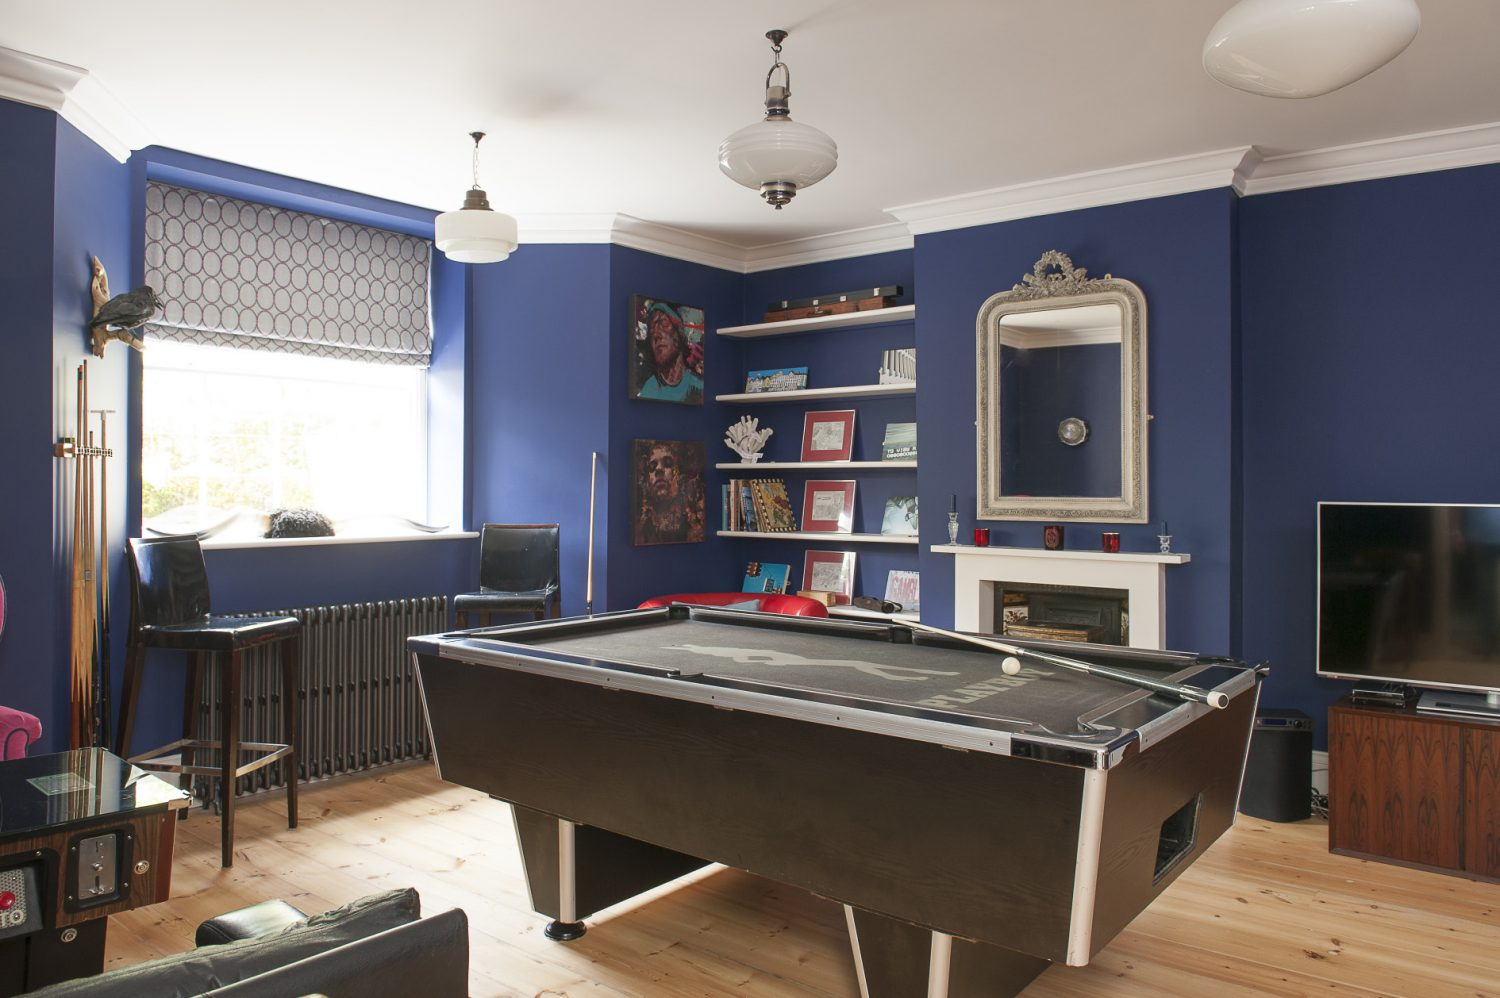 The boys' blue playroom is dominated by a full-size pool table with a supporting cast of an original Space Invaders console